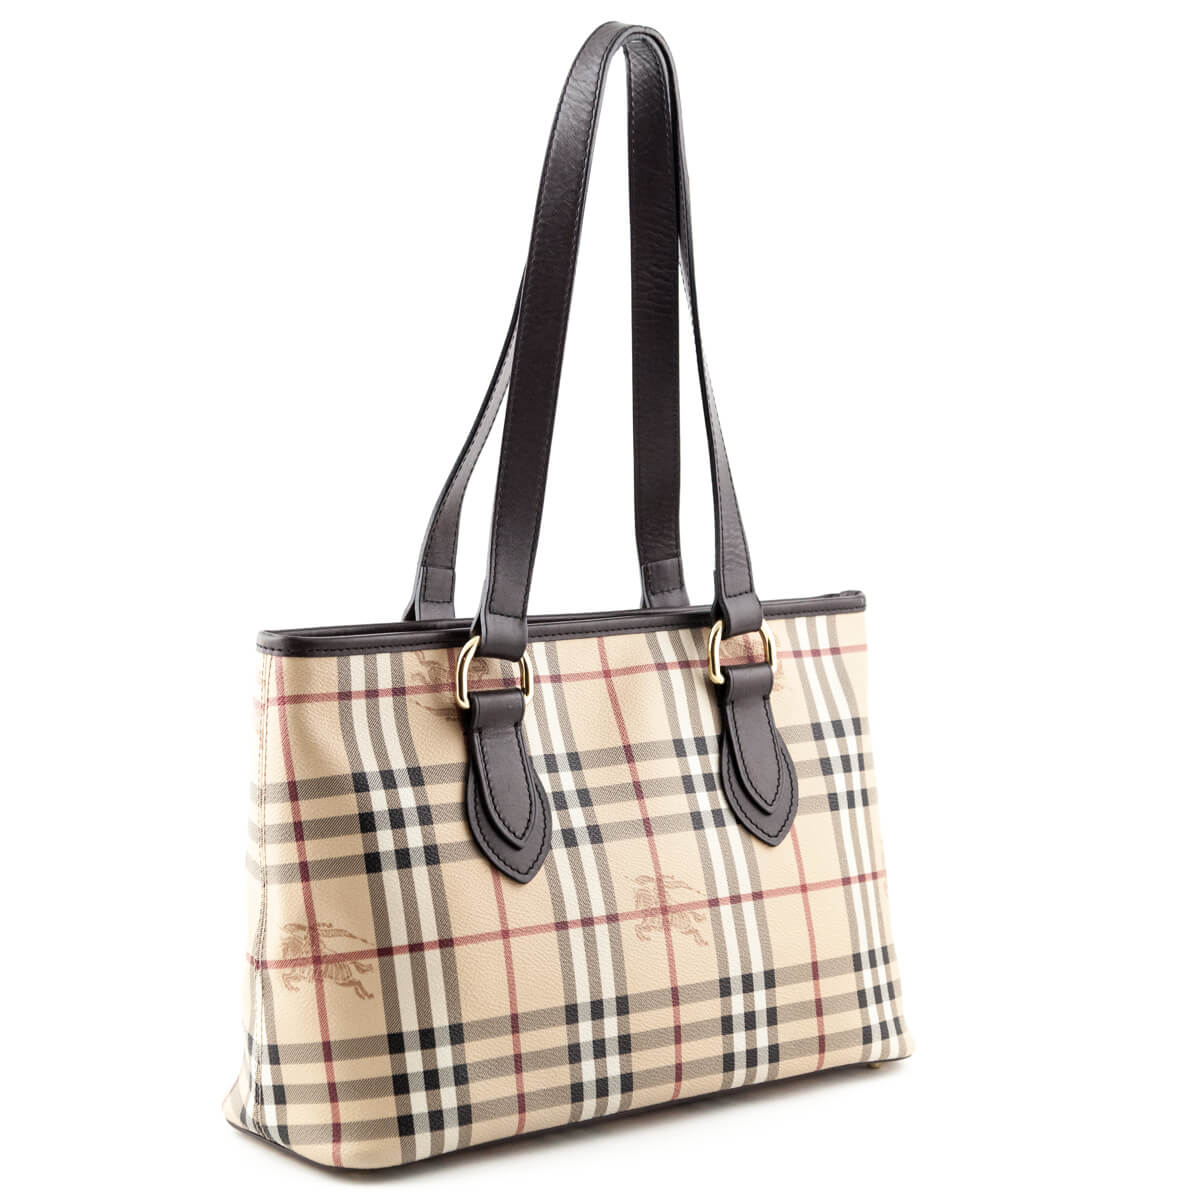 eb85b6045af5 ... Burberry Haymarket Check Regent Tote - LOVE that BAG - Preowned  Authentic Designer Handbags ...